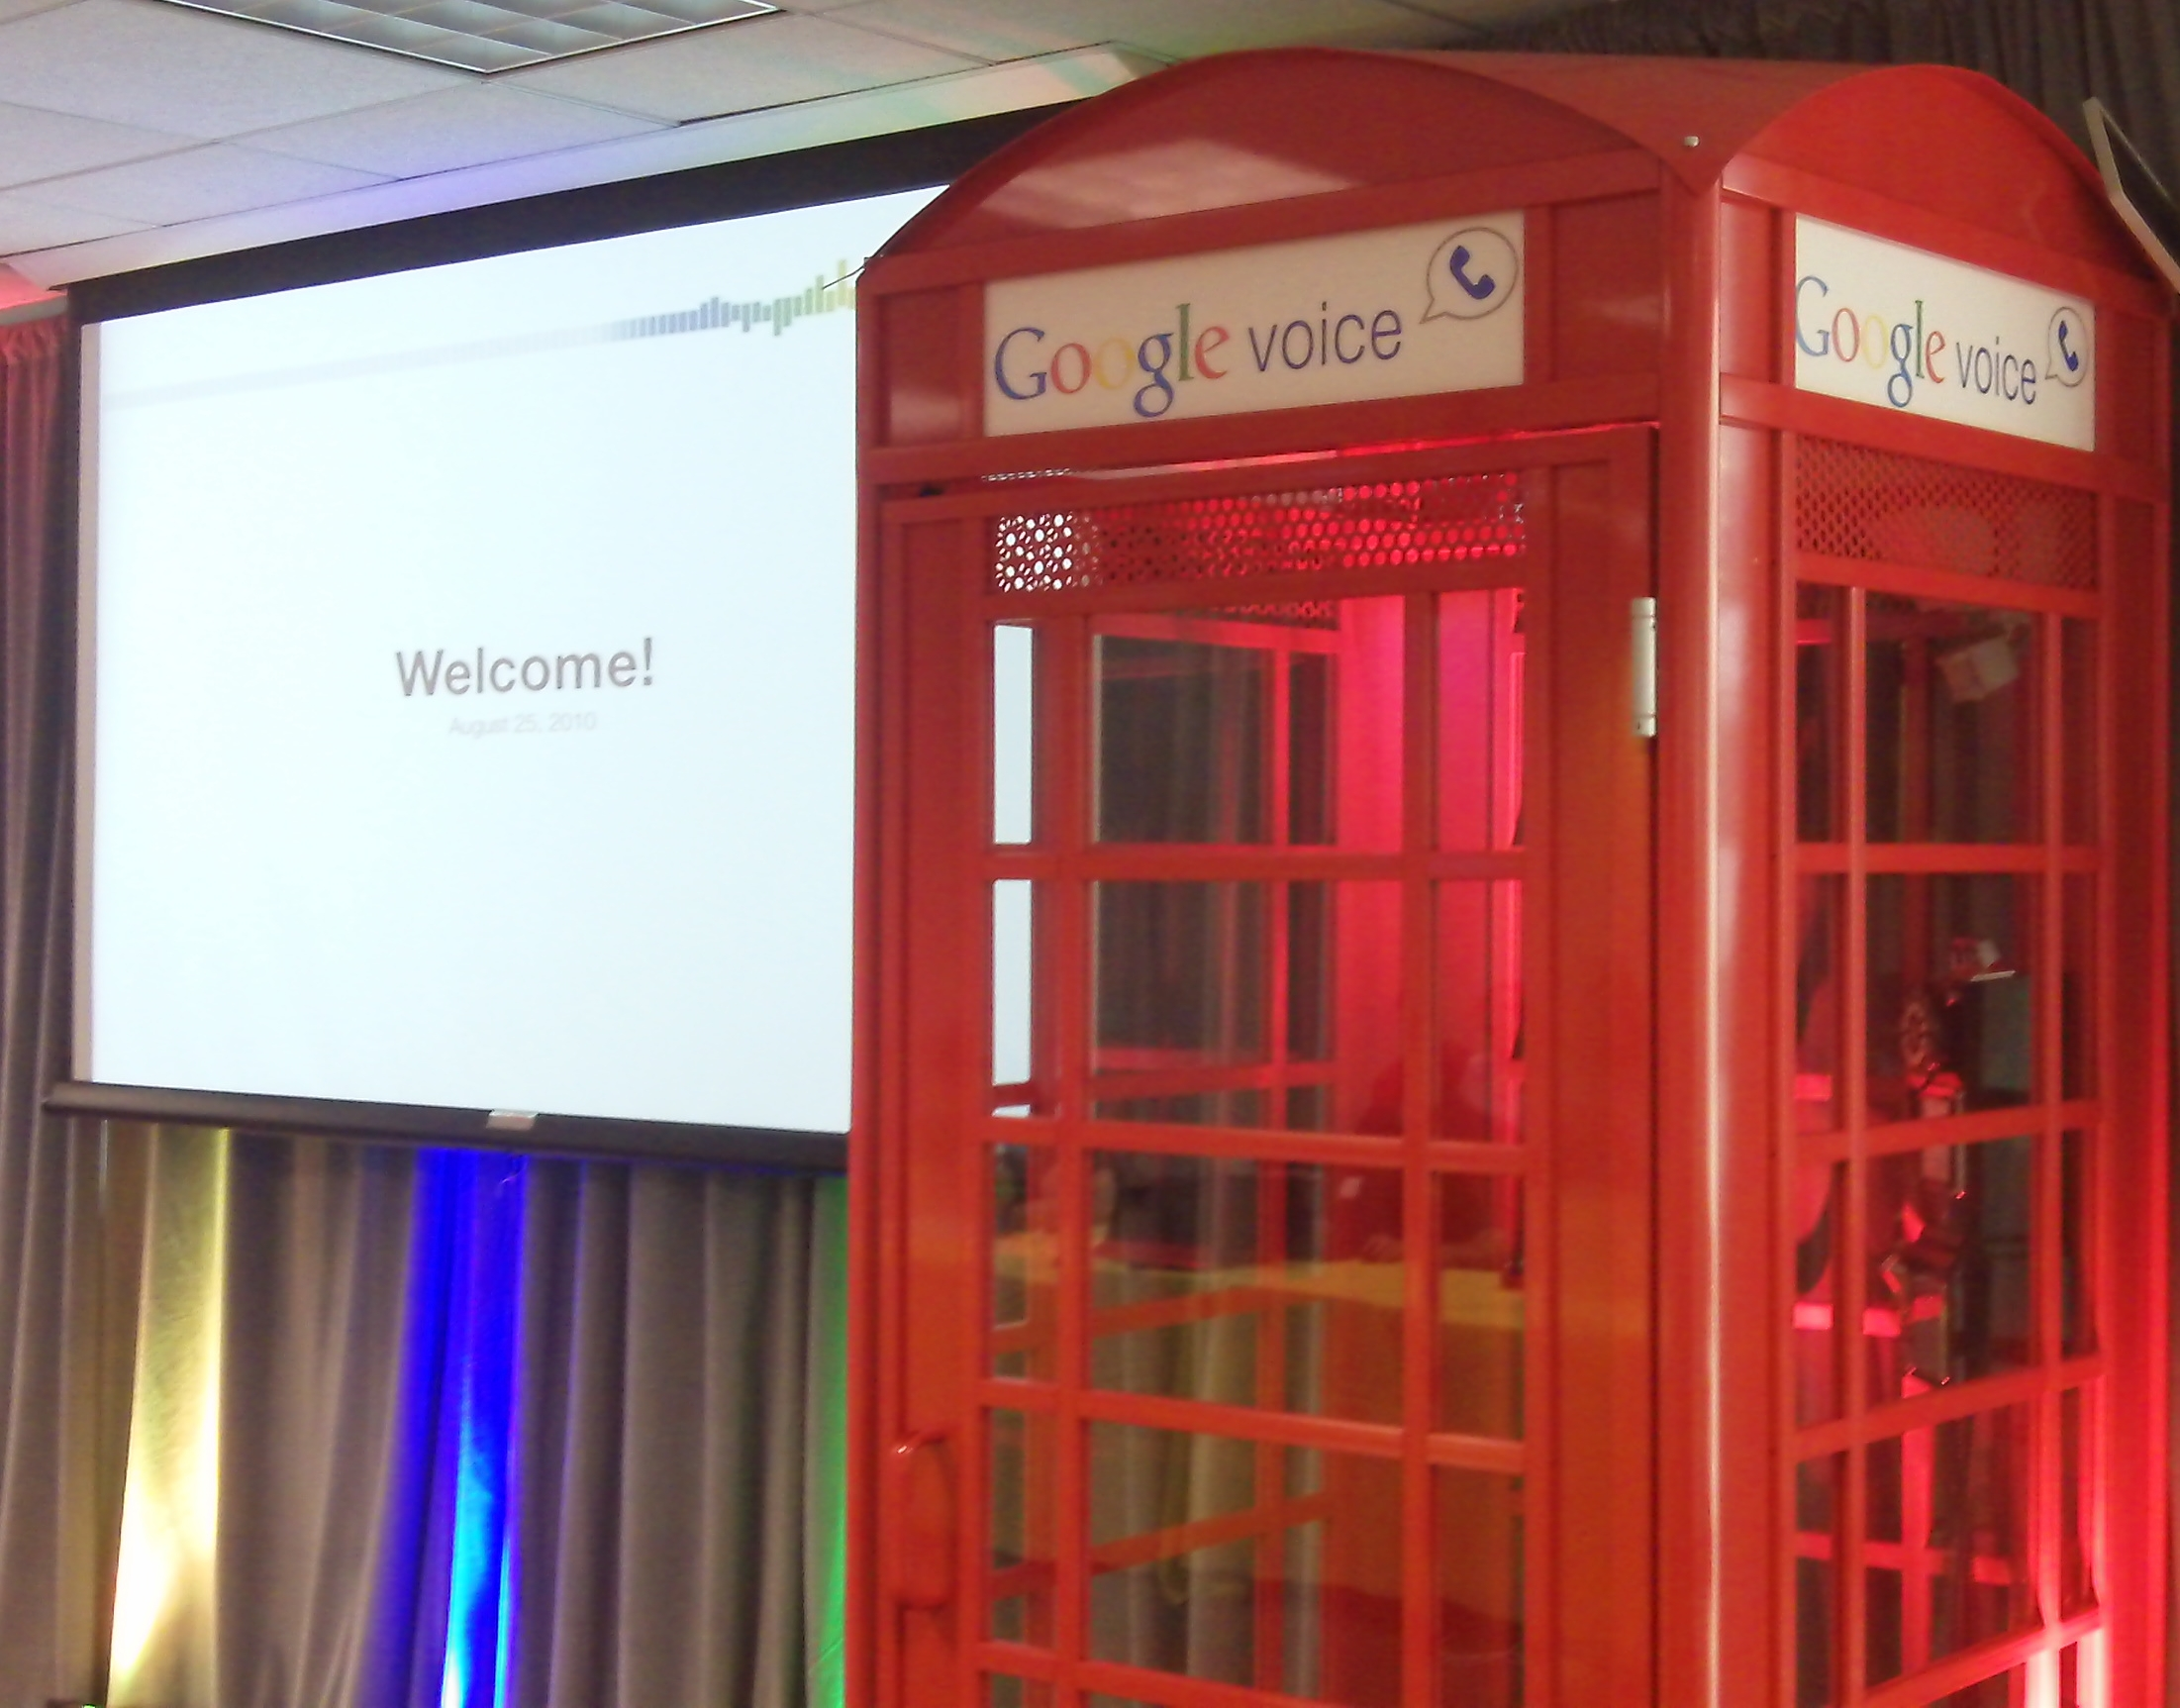 Video: The Google Voice Phone Booth